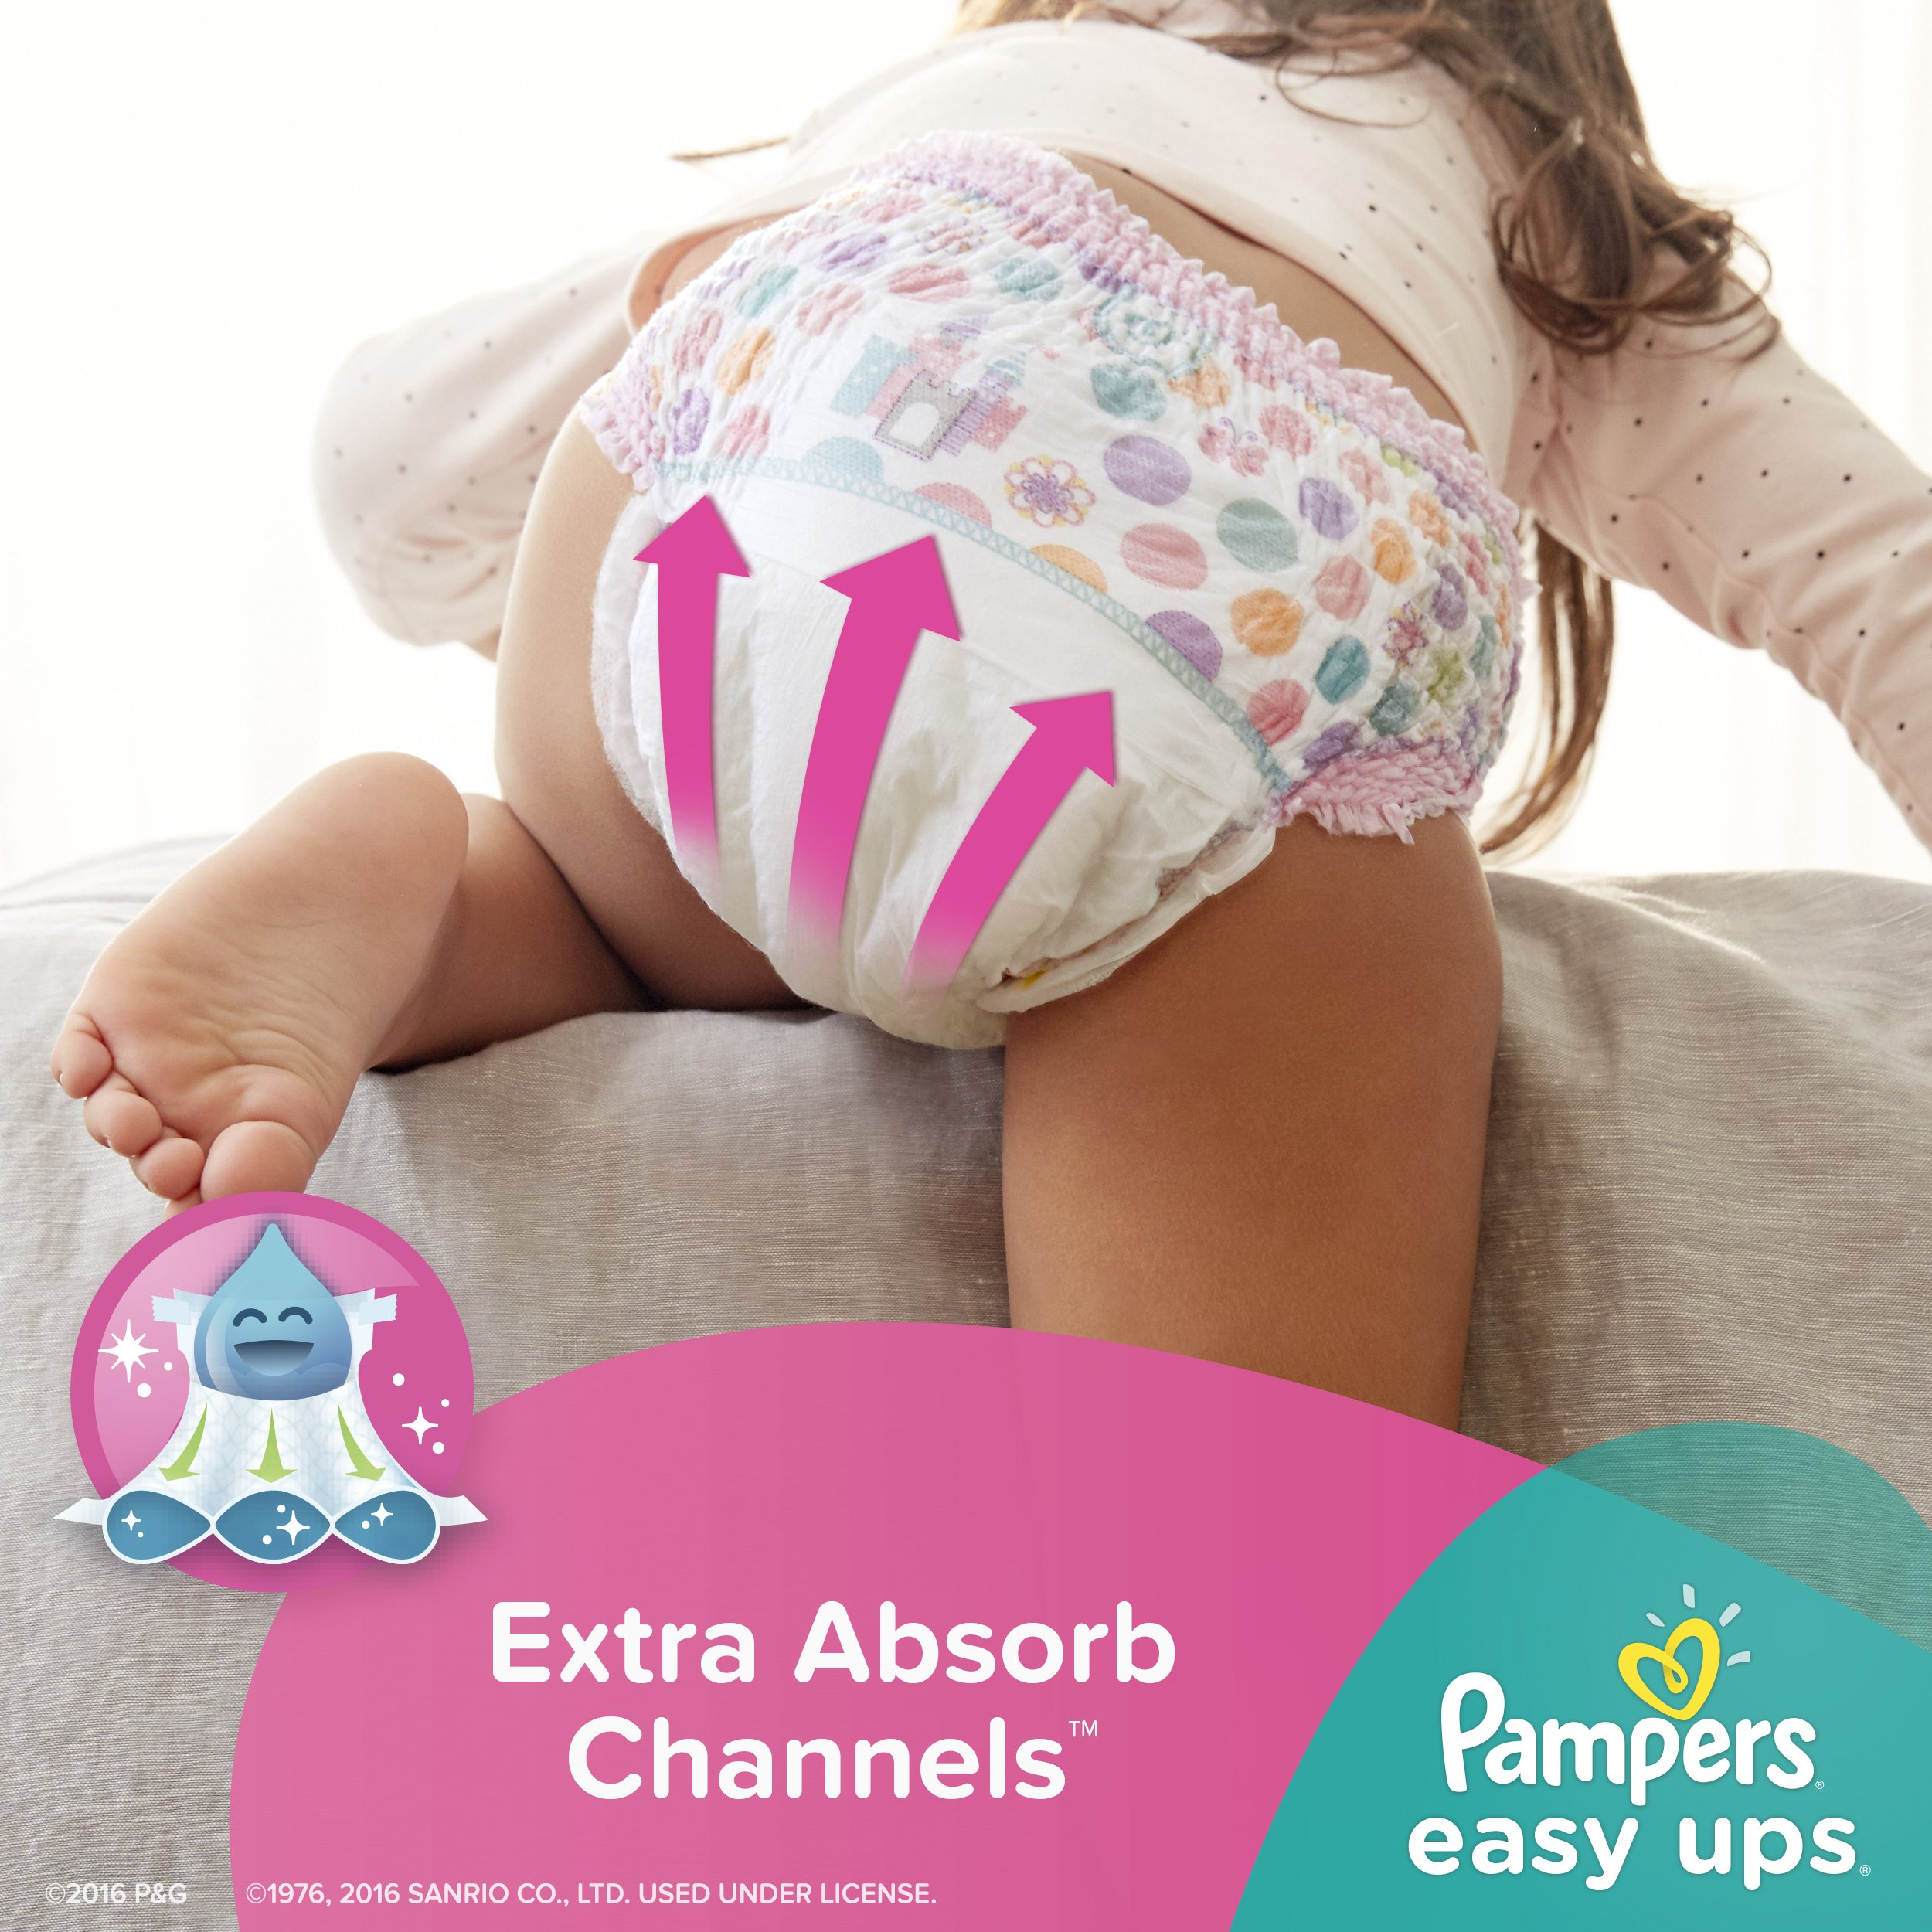 Pampers Easy Ups Training Pants Pull On Disposable Diapers for Girls Size 5 (3T-4T), 148 Count, ONE MONTH SUPPLY by Pampers (Image #7)